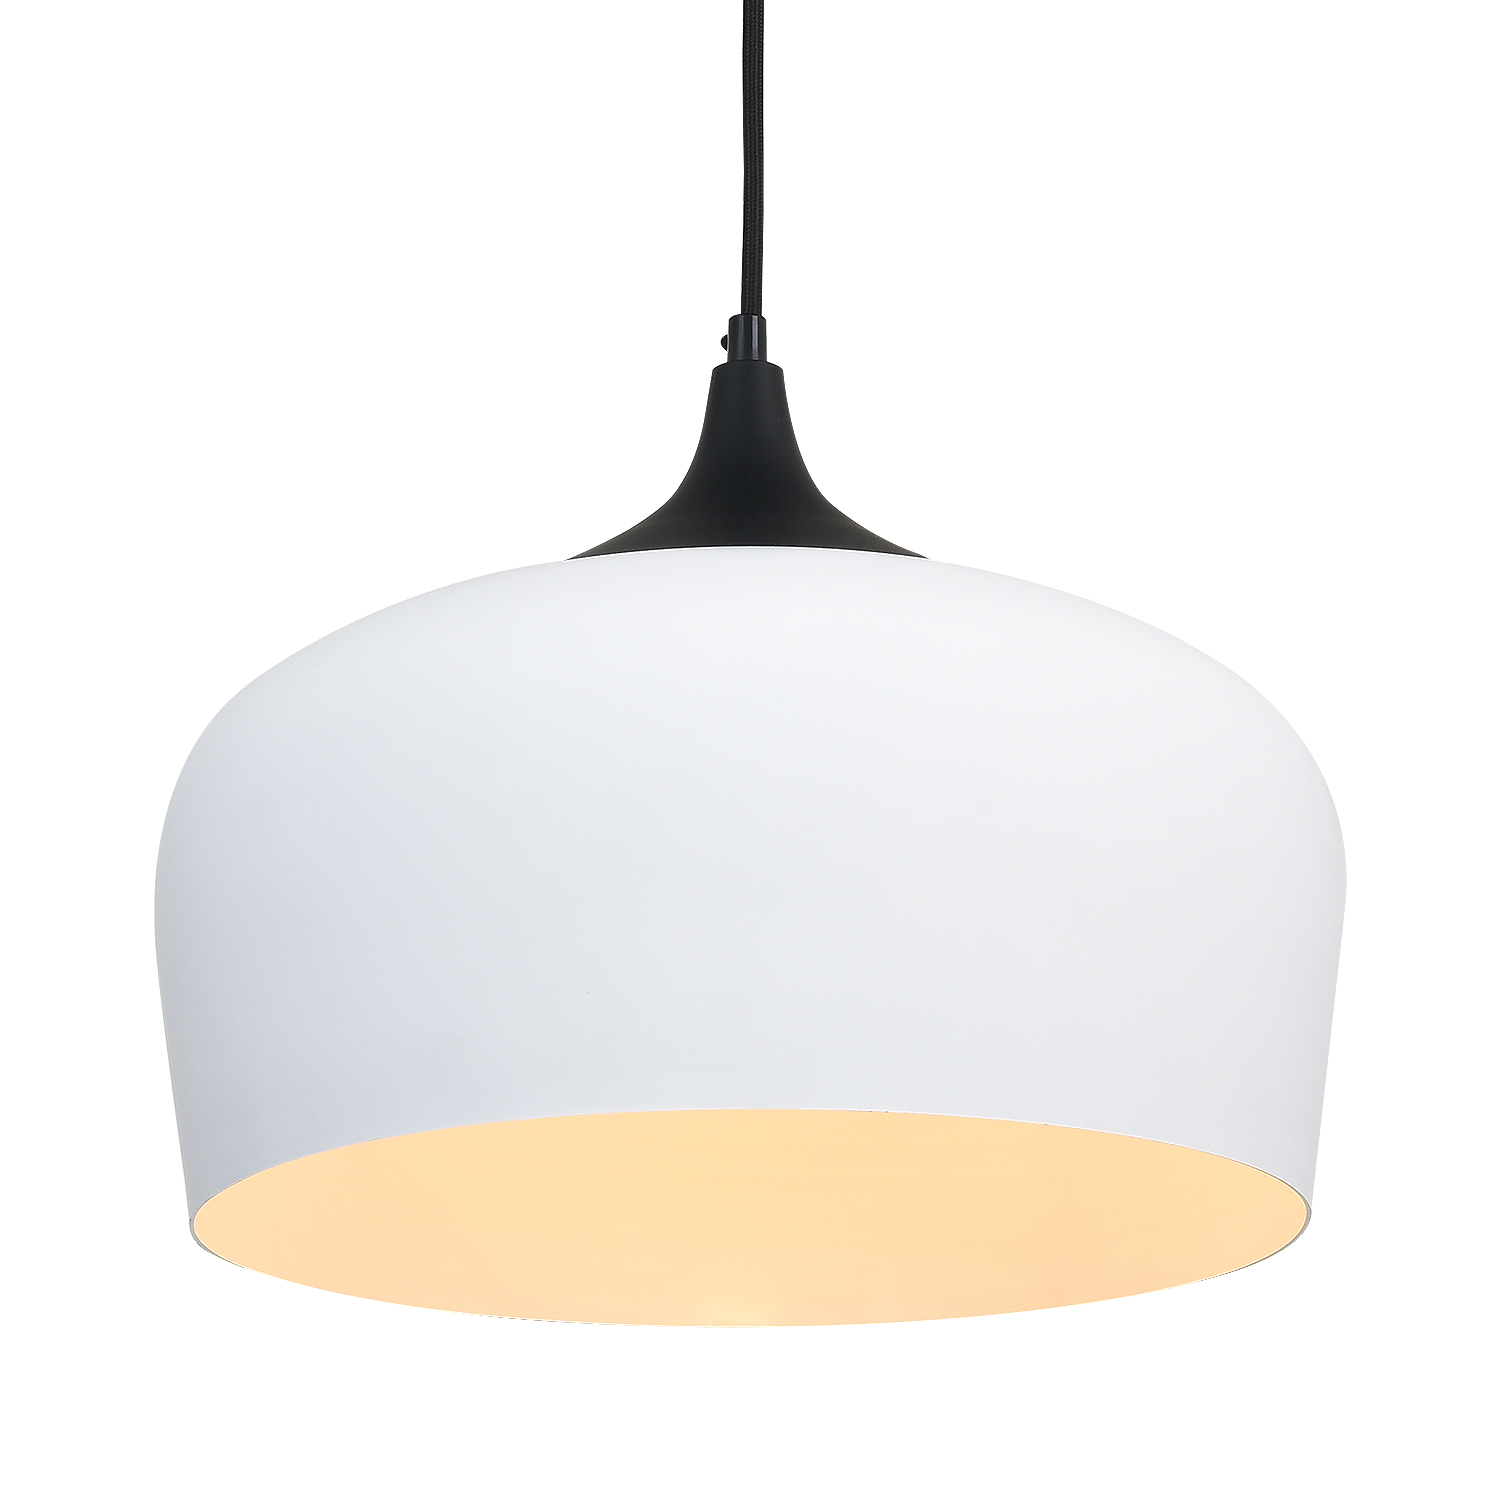 [UPC 631145973685]  Briever Pendant Lamp, 1 Light Dome Hanging Pendant Light,Metal Ceiling Light for Dining Room, Kitchen, Living Room, Restaurant, Bar -with LED Bulb